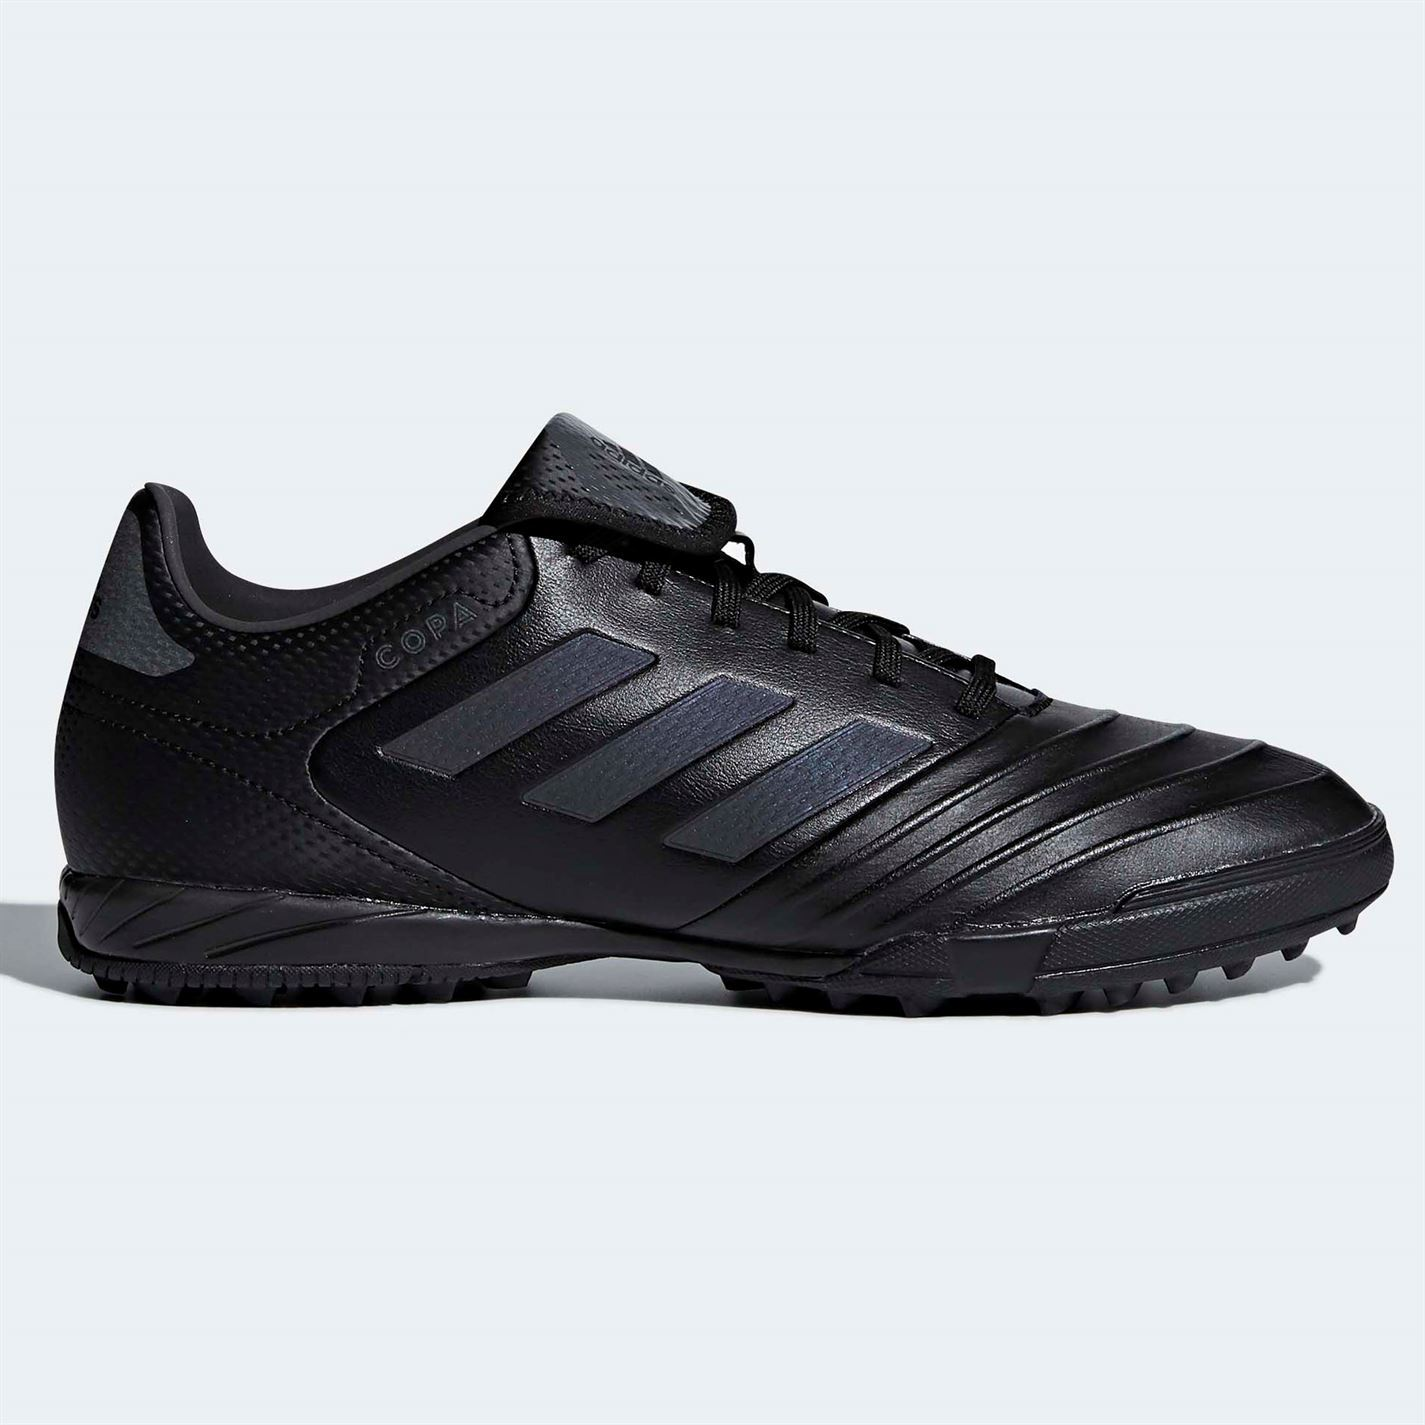 69b219b9d8db ... adidas Copa Tango 18.3 Astro Turf Football Shoes Mens Black Soccer  Trainers ...